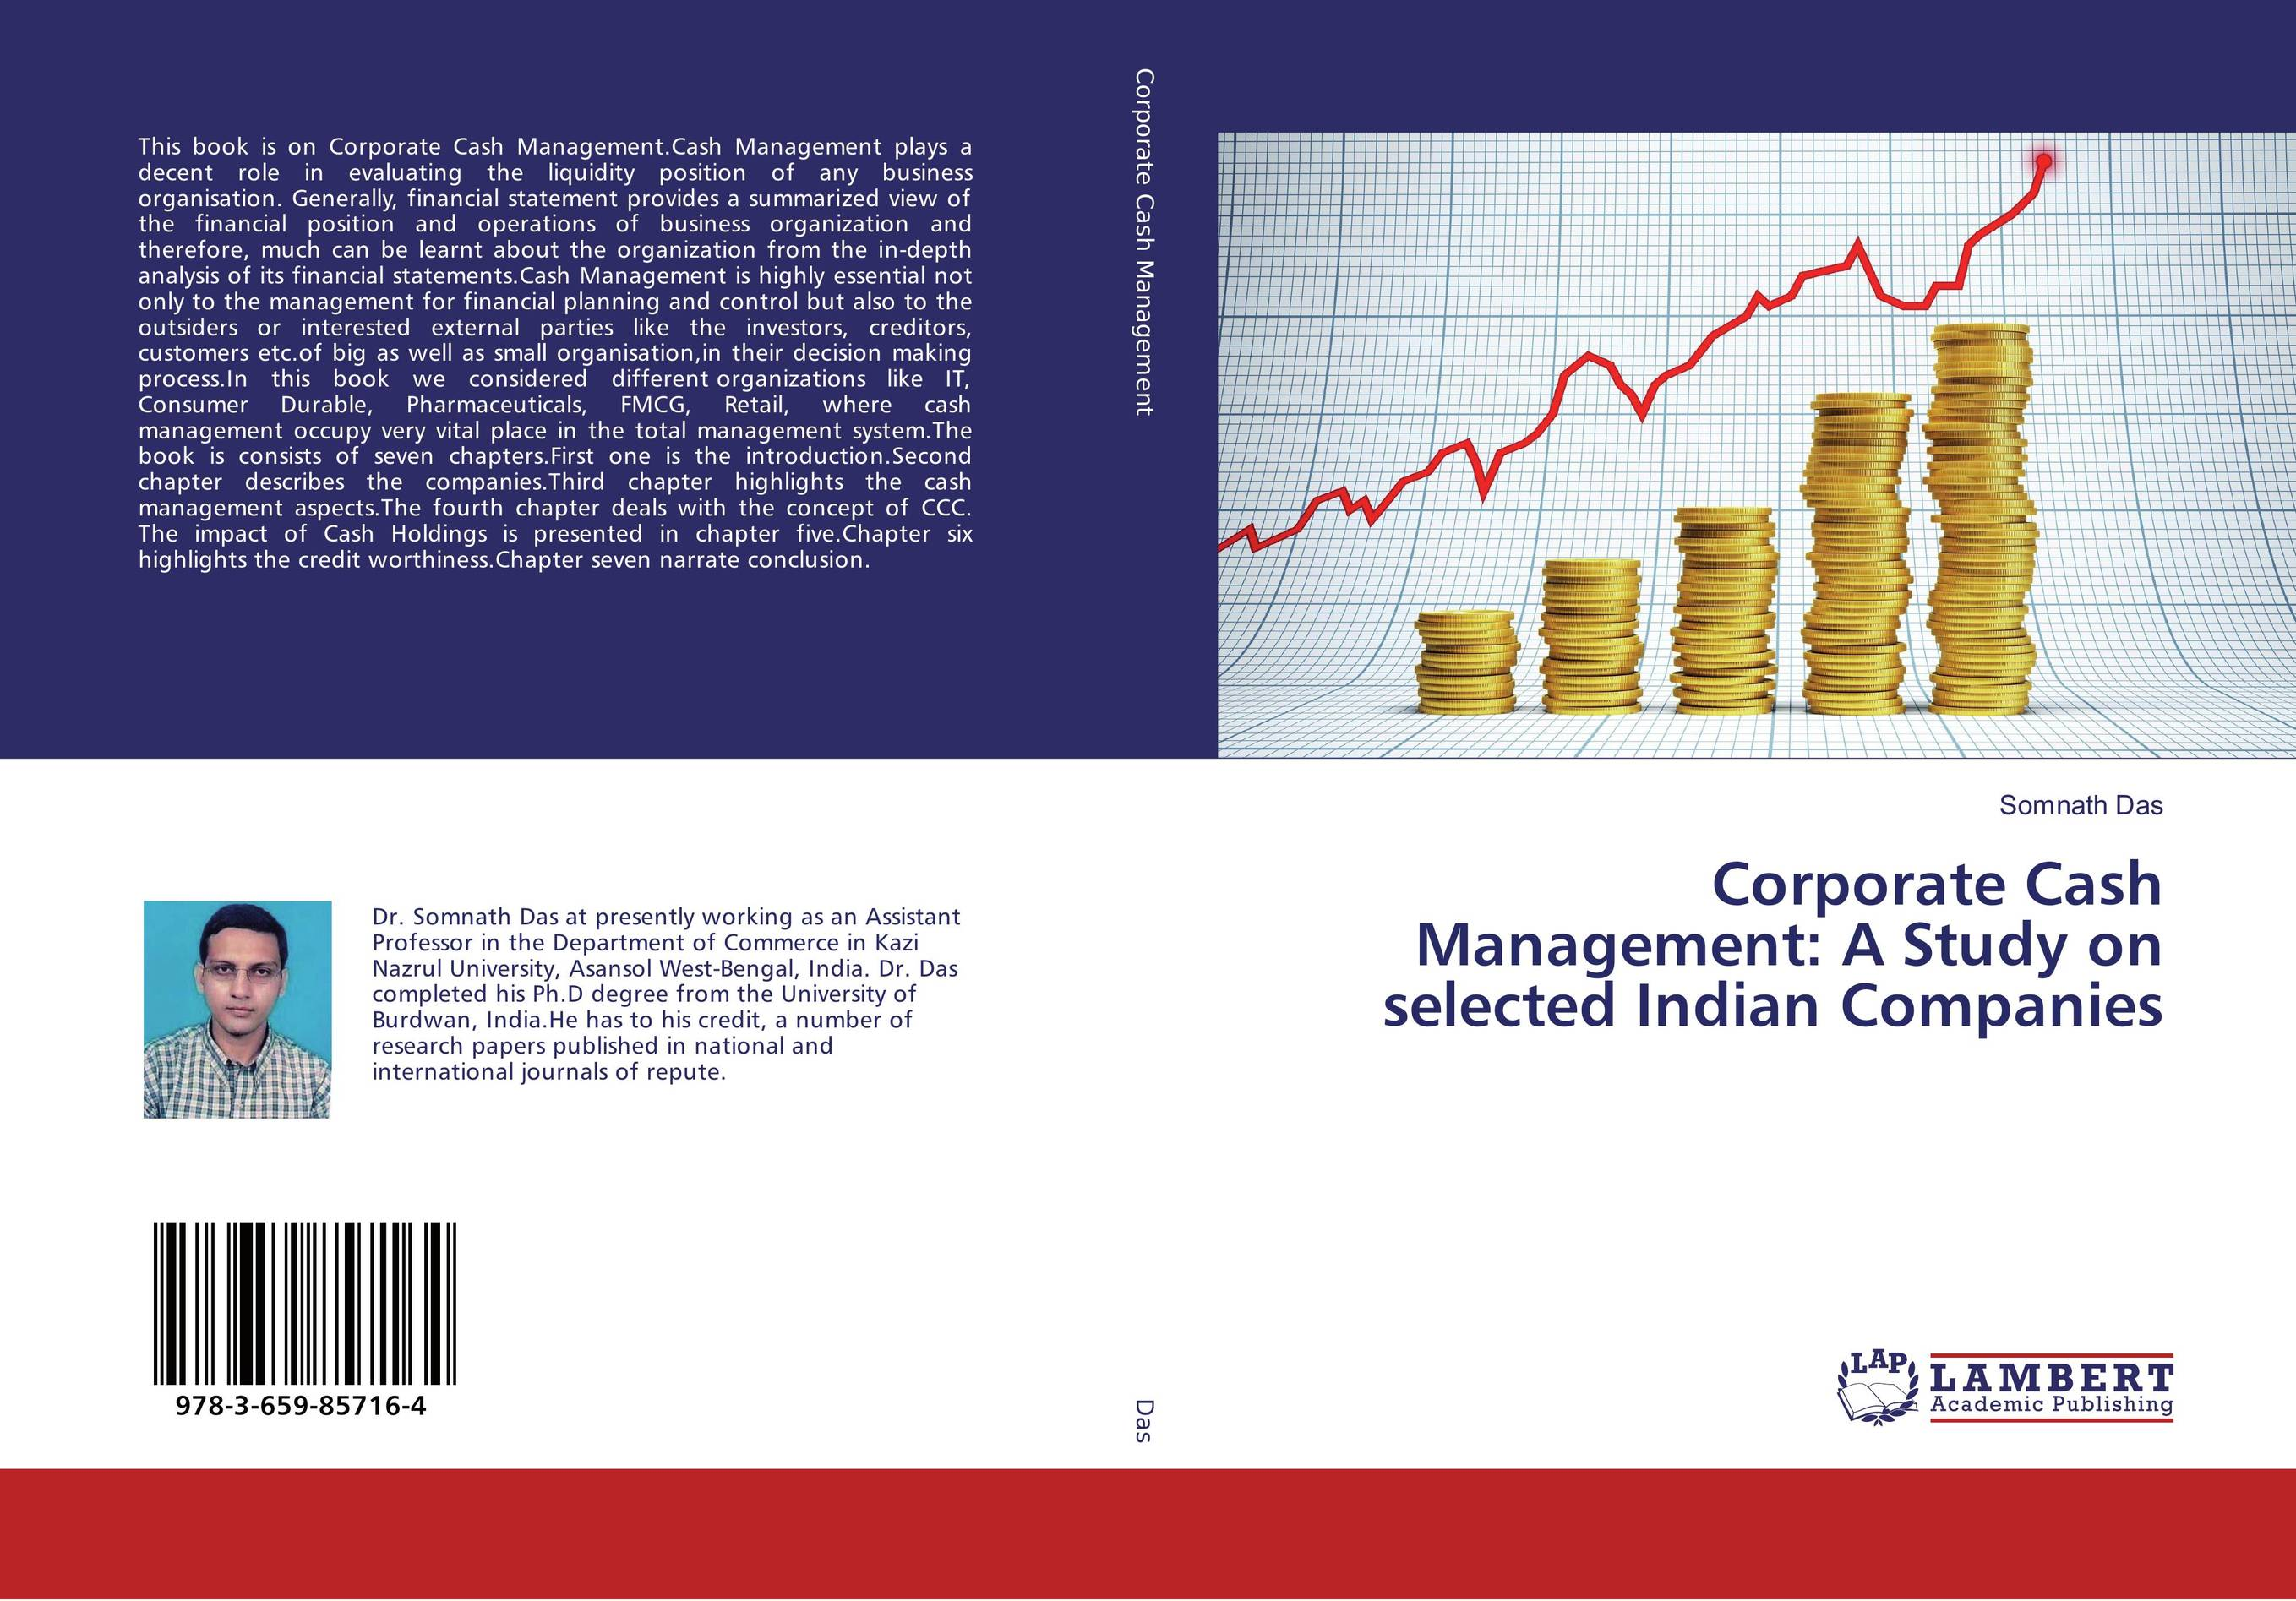 Corporate Cash Management: A Study on selected Indian Companies